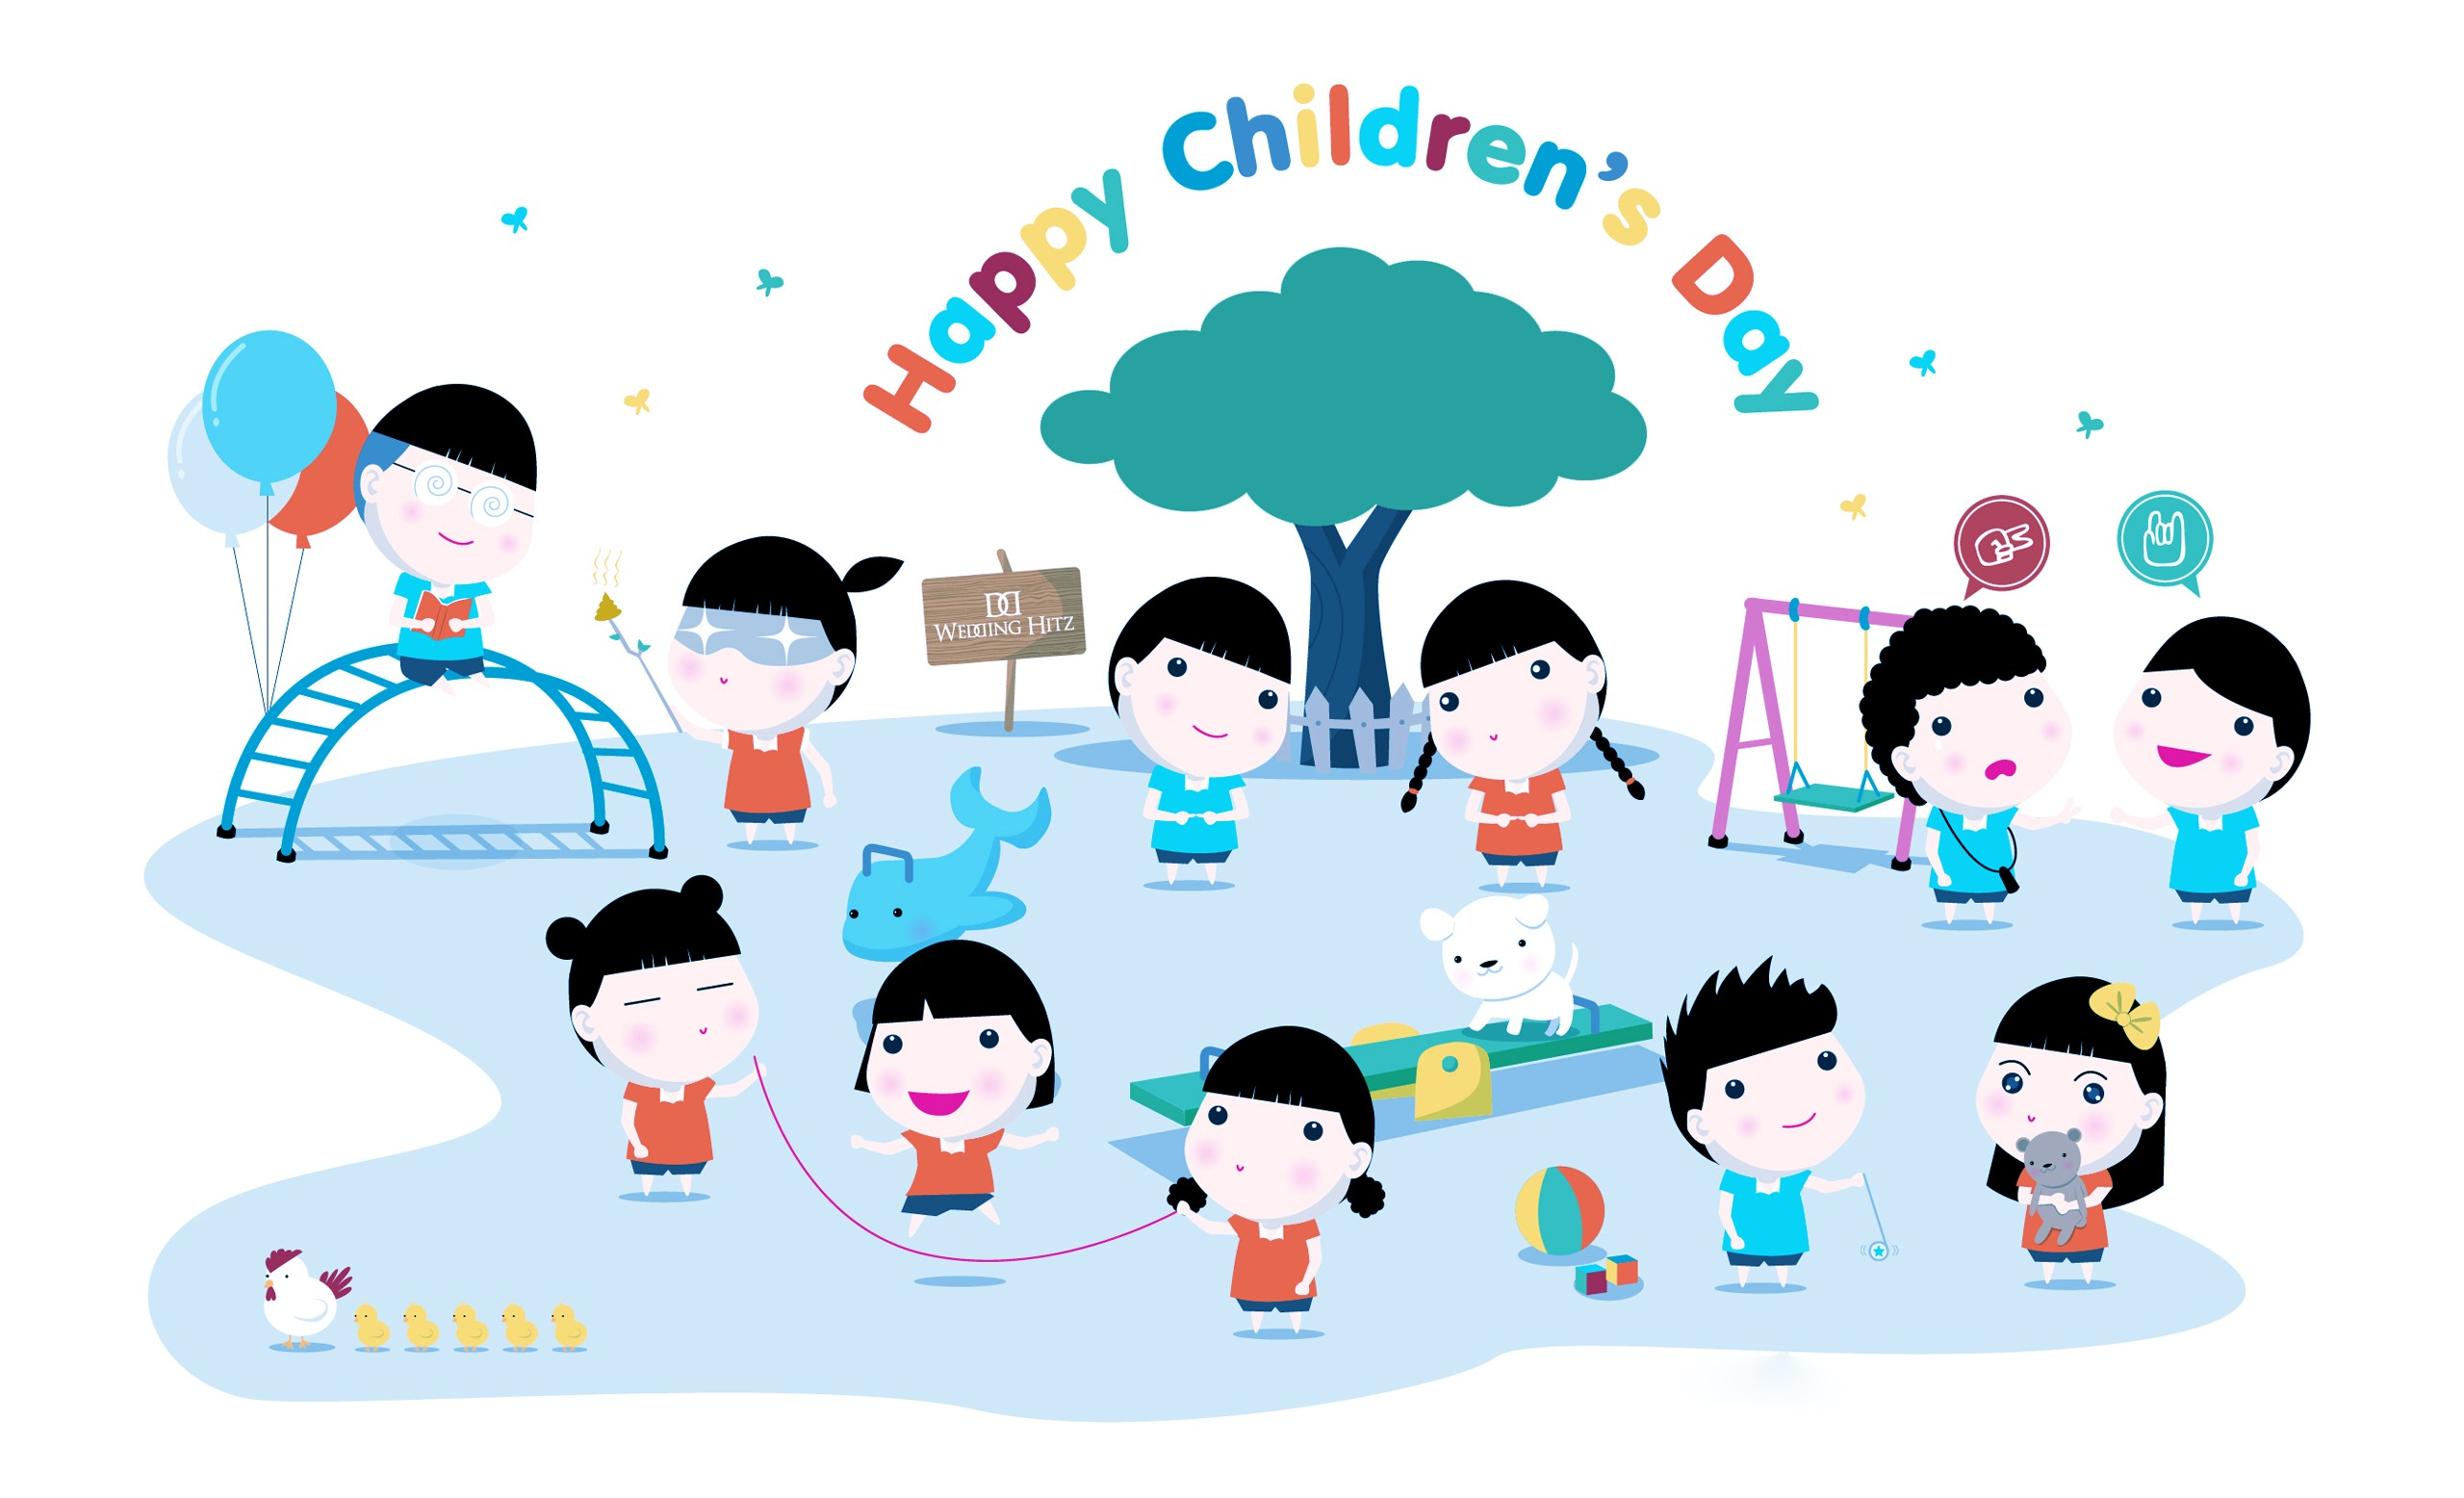 happy childrens day anime cartoon greetings wishes hd wallpaper